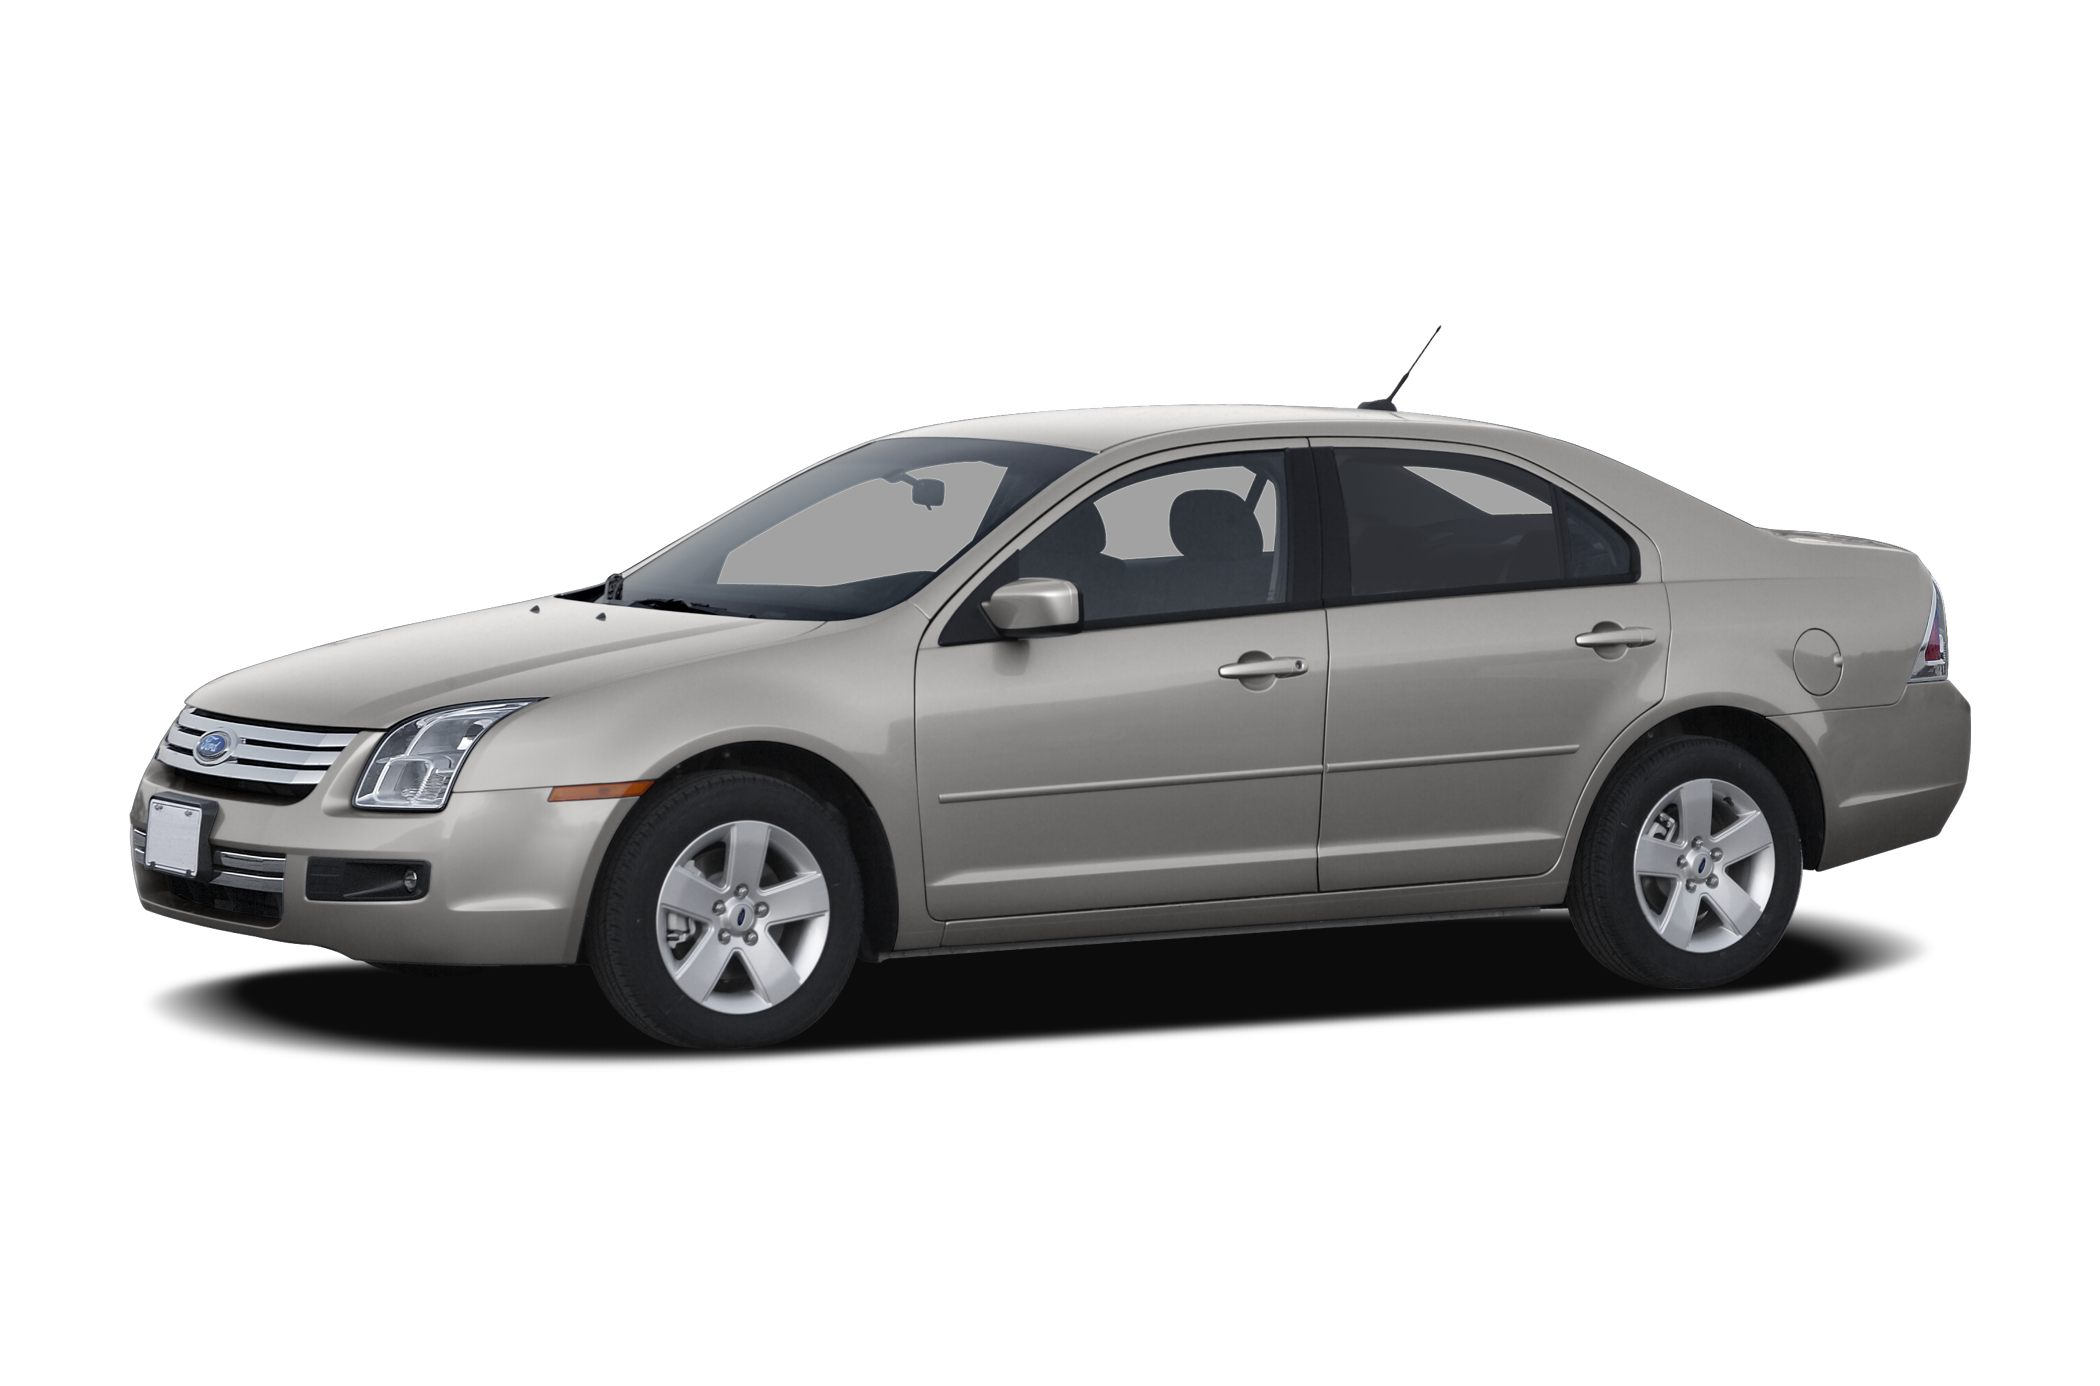 2007 Ford Fusion SEL Sedan for sale in Piqua for $7,995 with 102,908 miles.